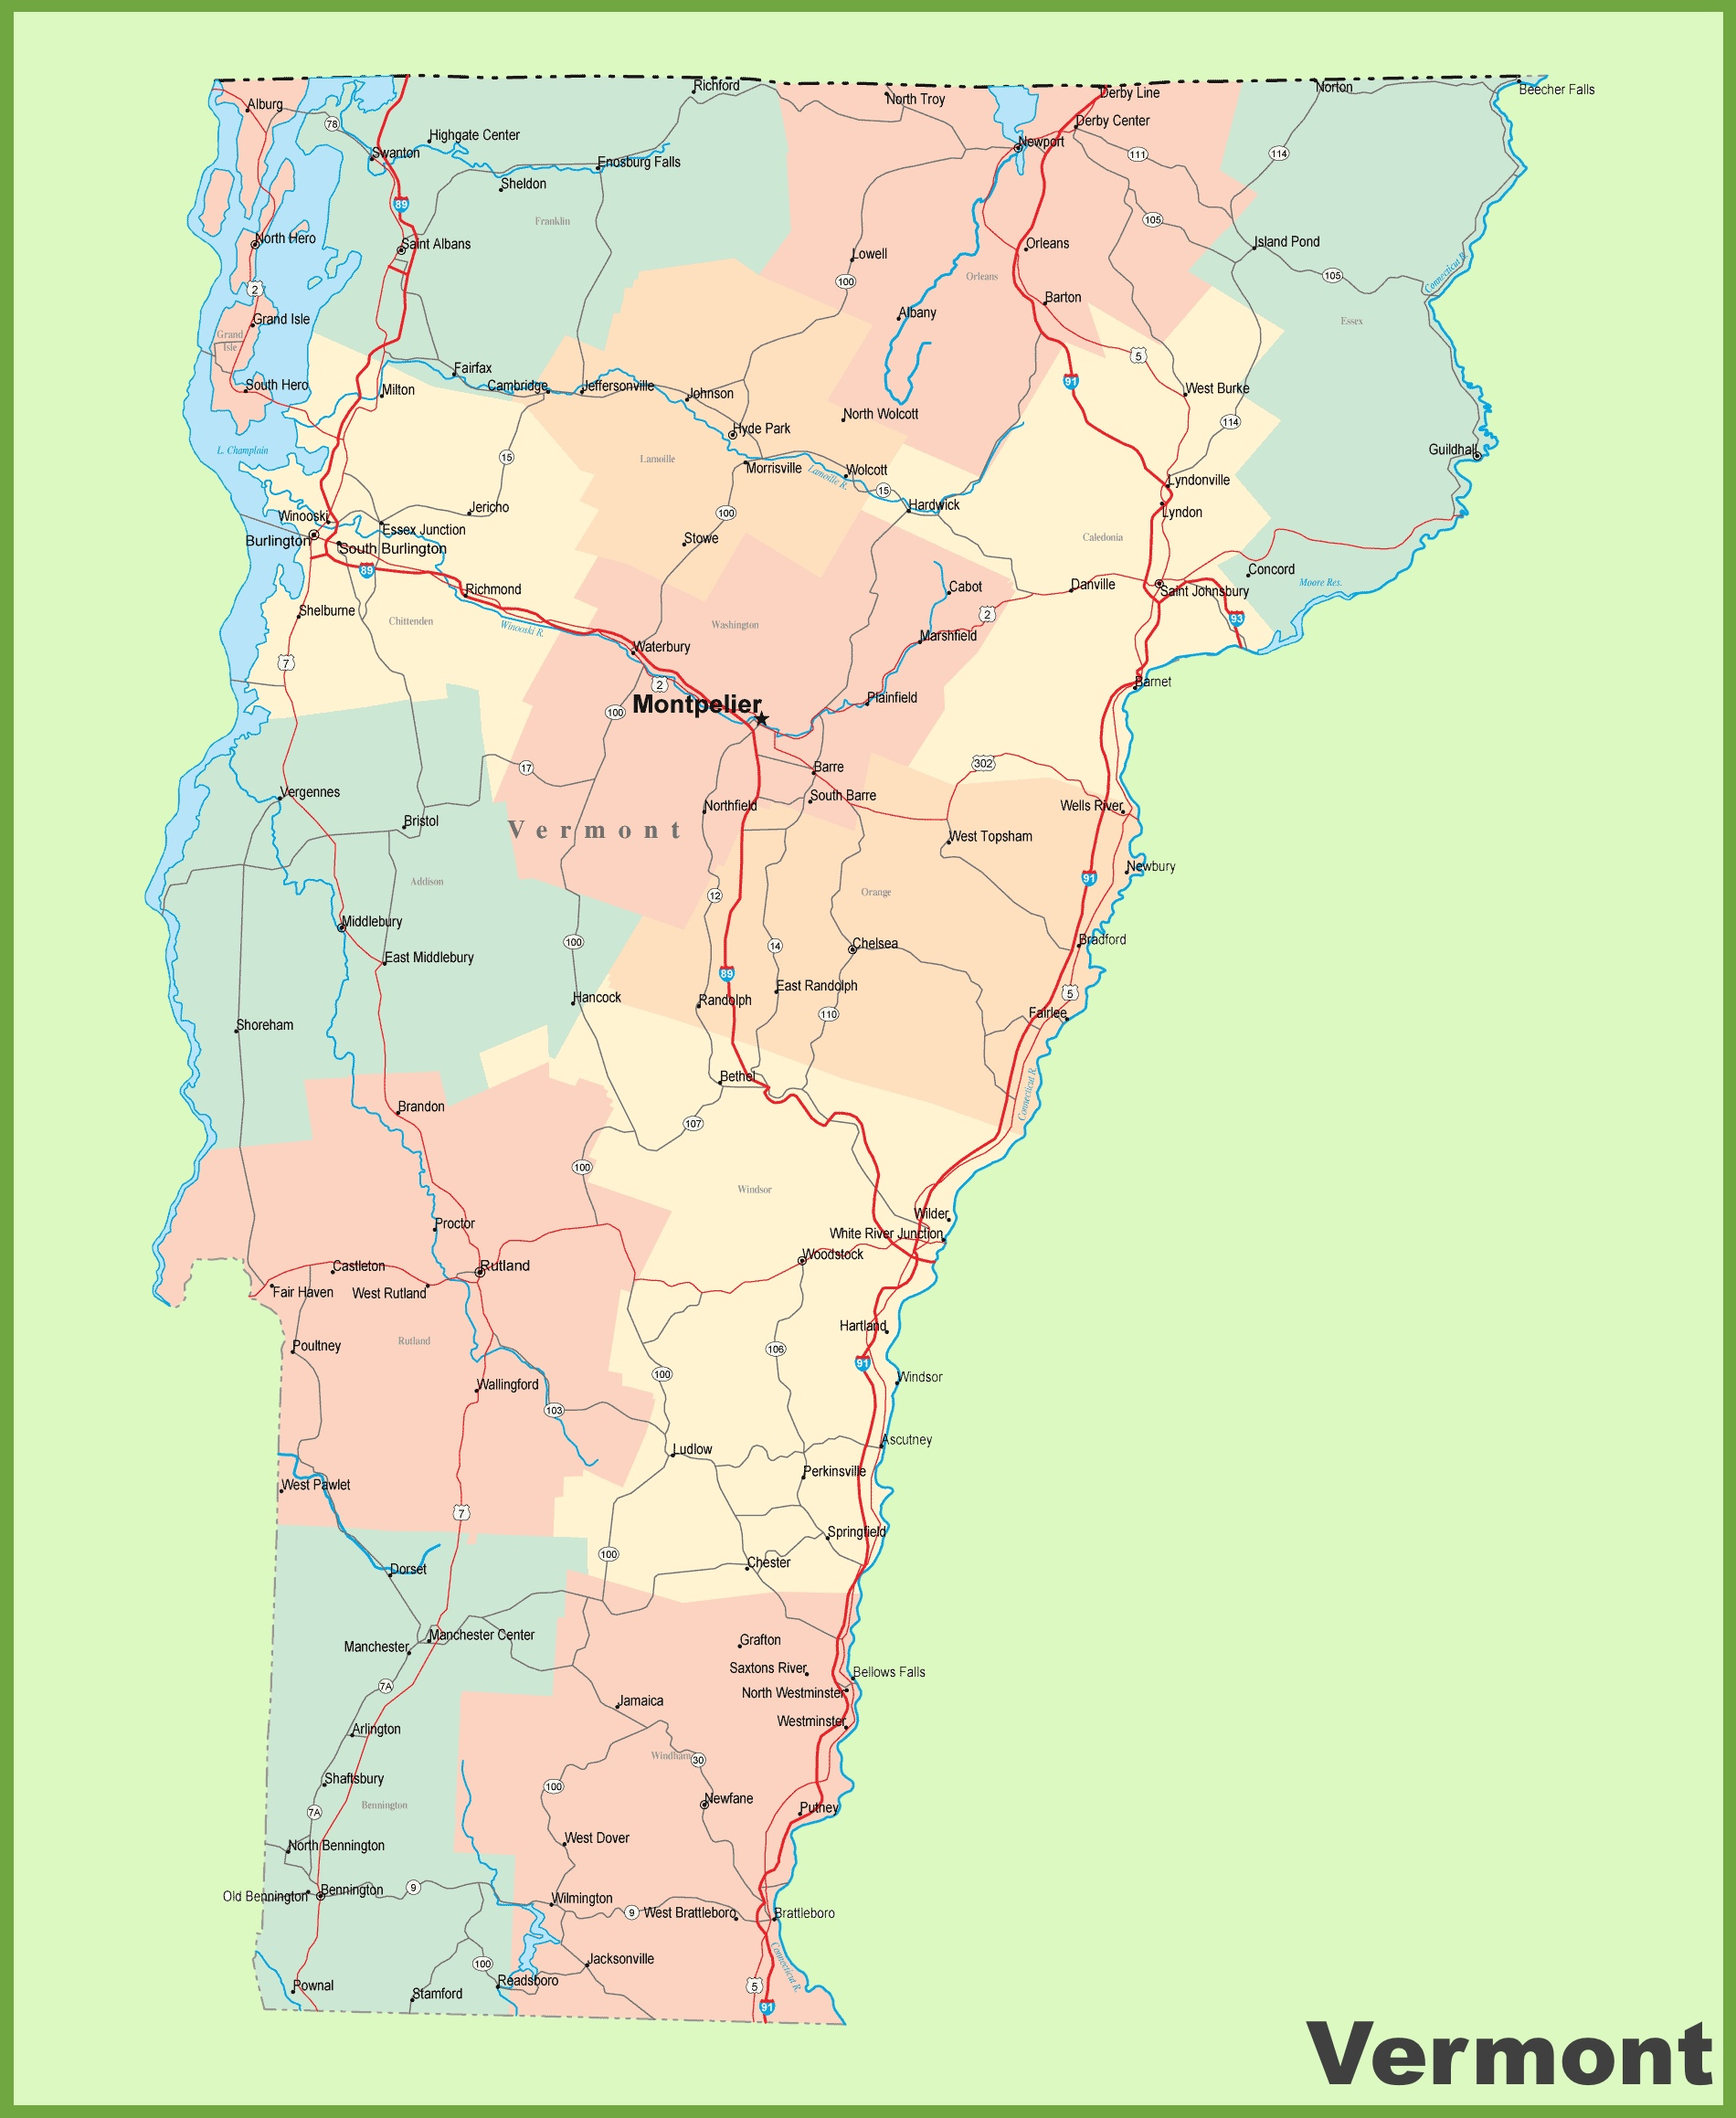 Road map of Vermont with cities